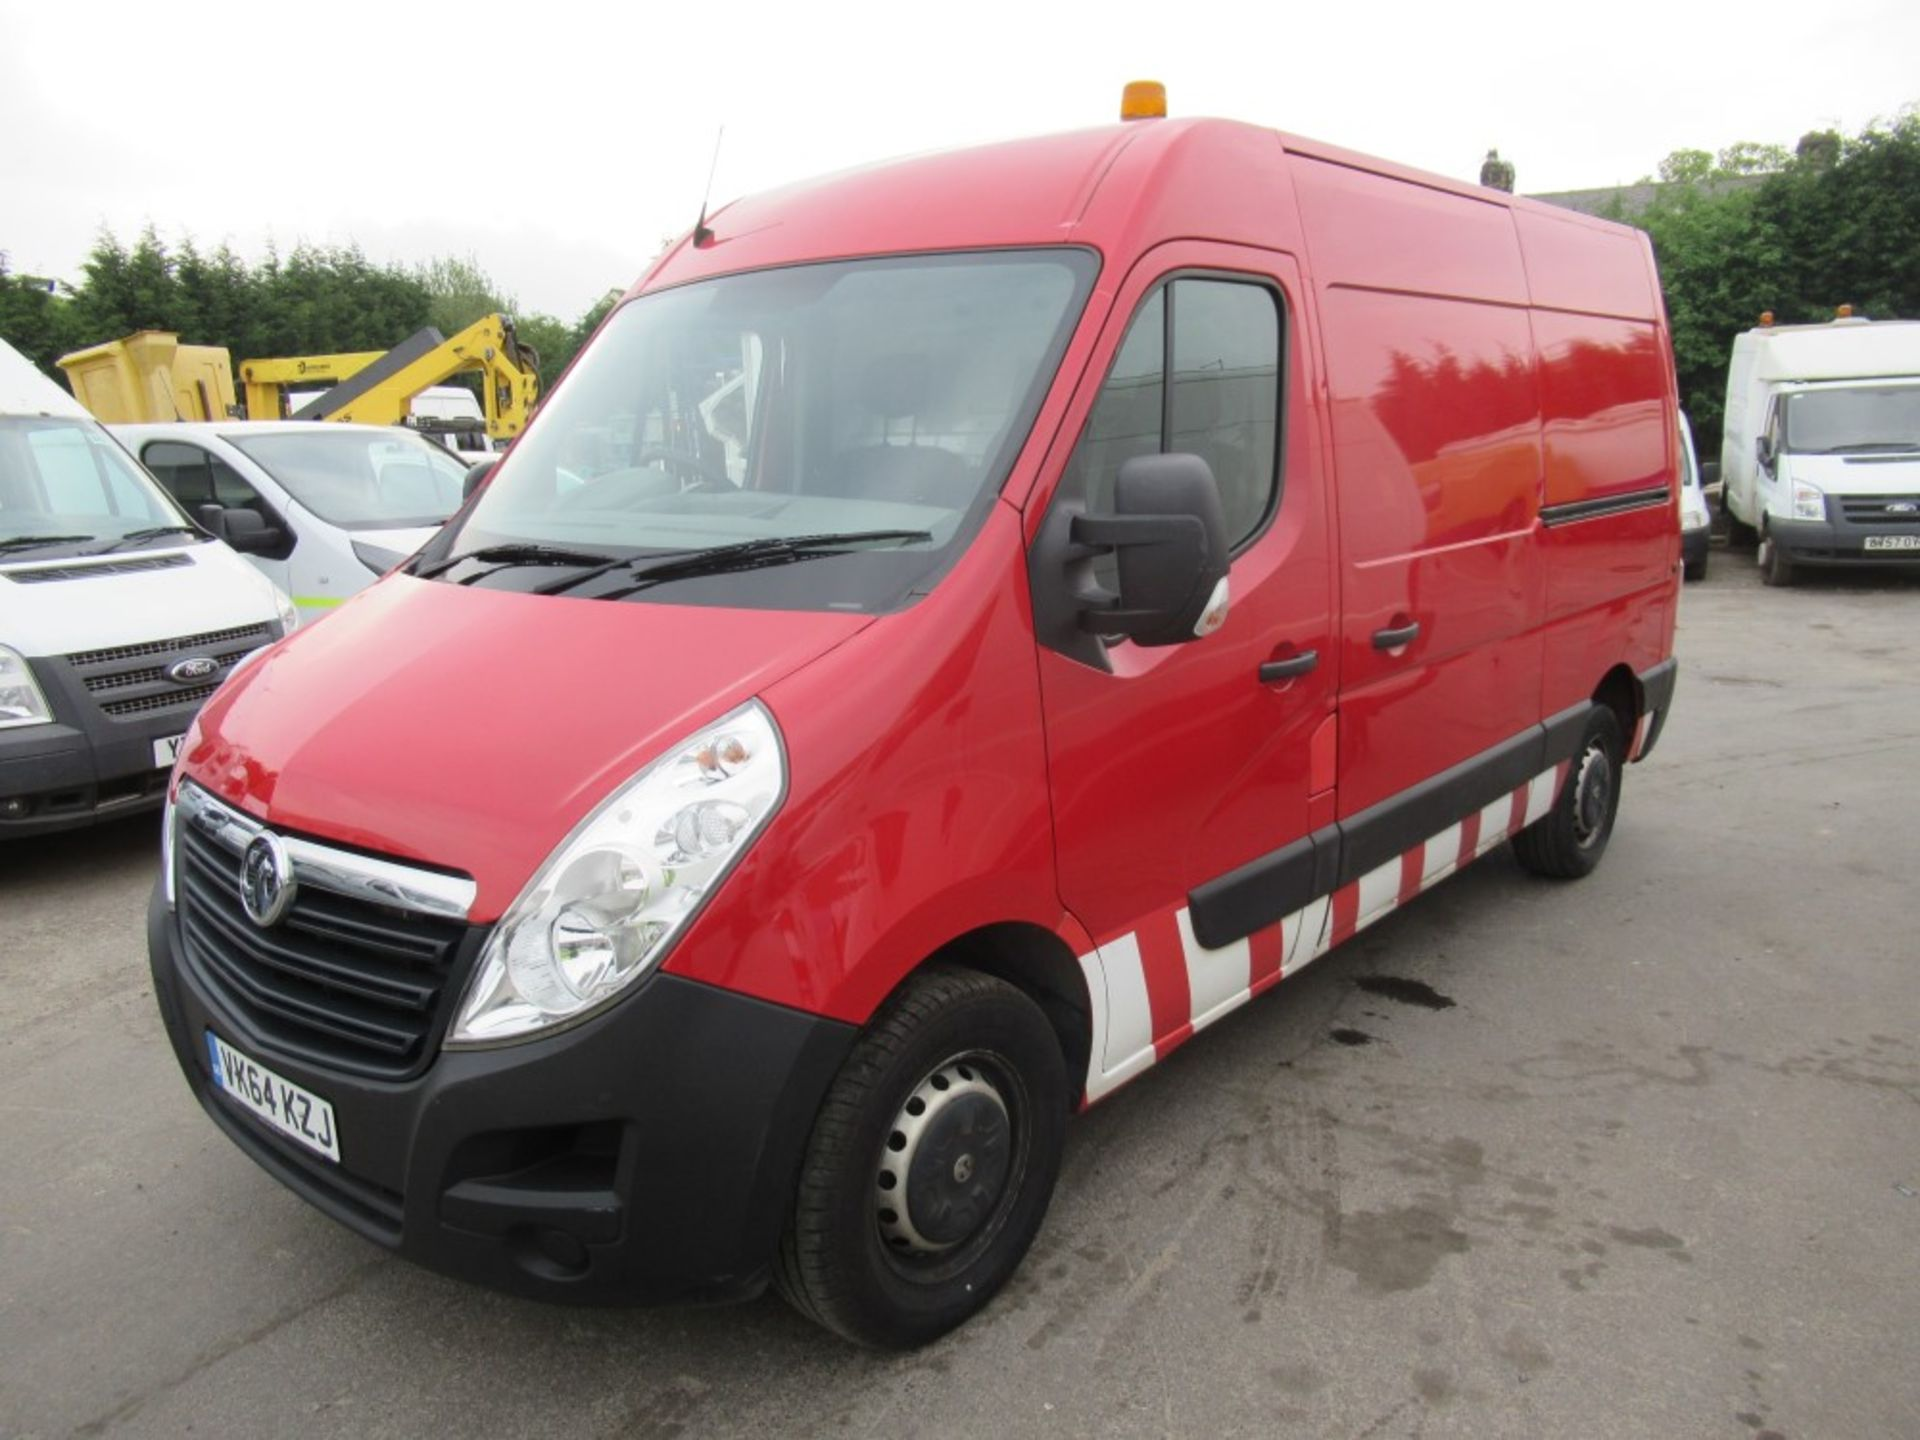 Lot 58 - 64 reg VAUXHALL MOVANO F3500 CDTI, 1ST REG 02/15, TEST 02/20, 104559M, V5 HERE, 1 OWNER FROM